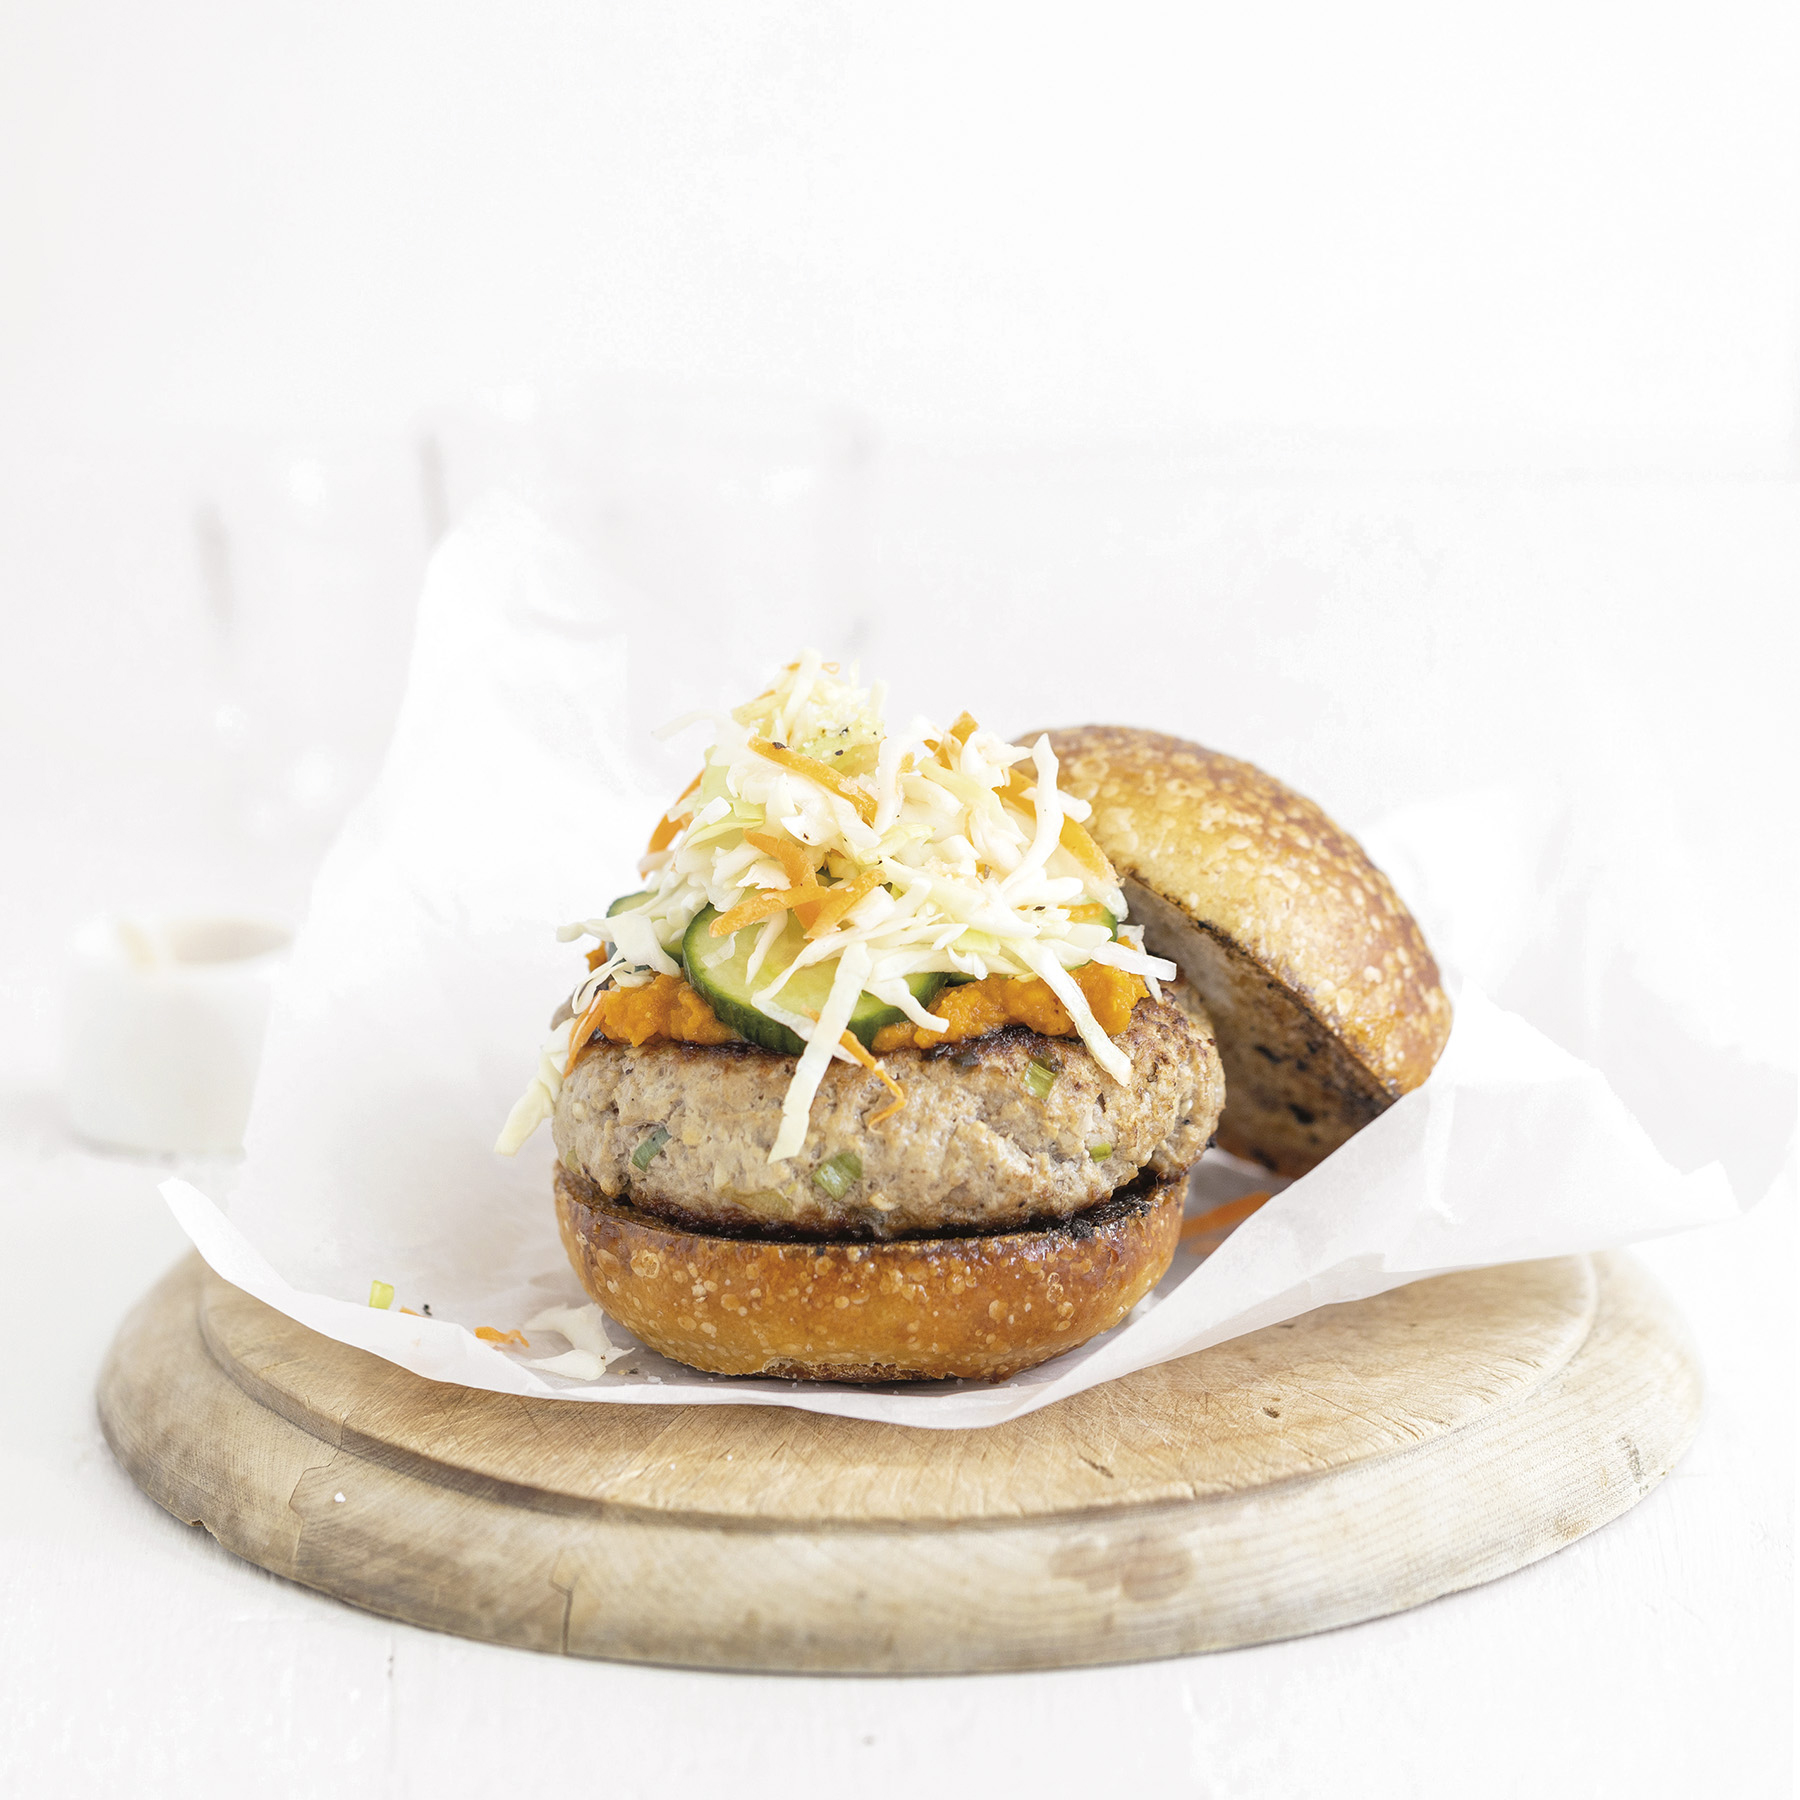 Asian pork burgers with slaw